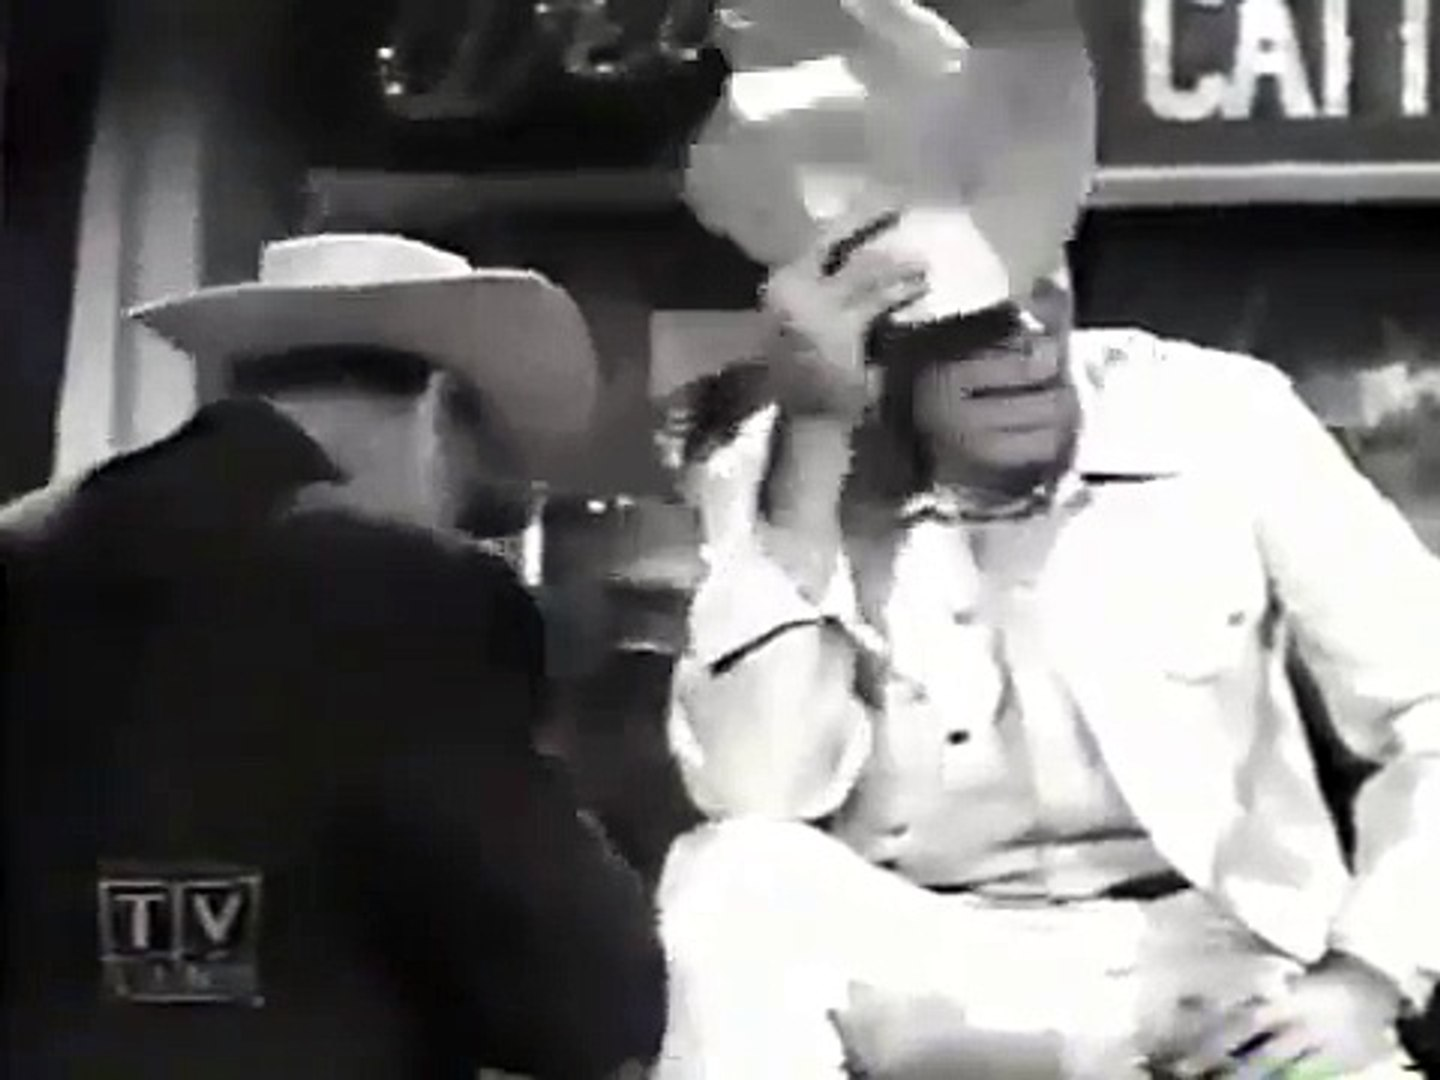 Dick Powell Show S02E16 The Losers.with Lee Marvin, Rosemary Clooney, Keenan Wynn